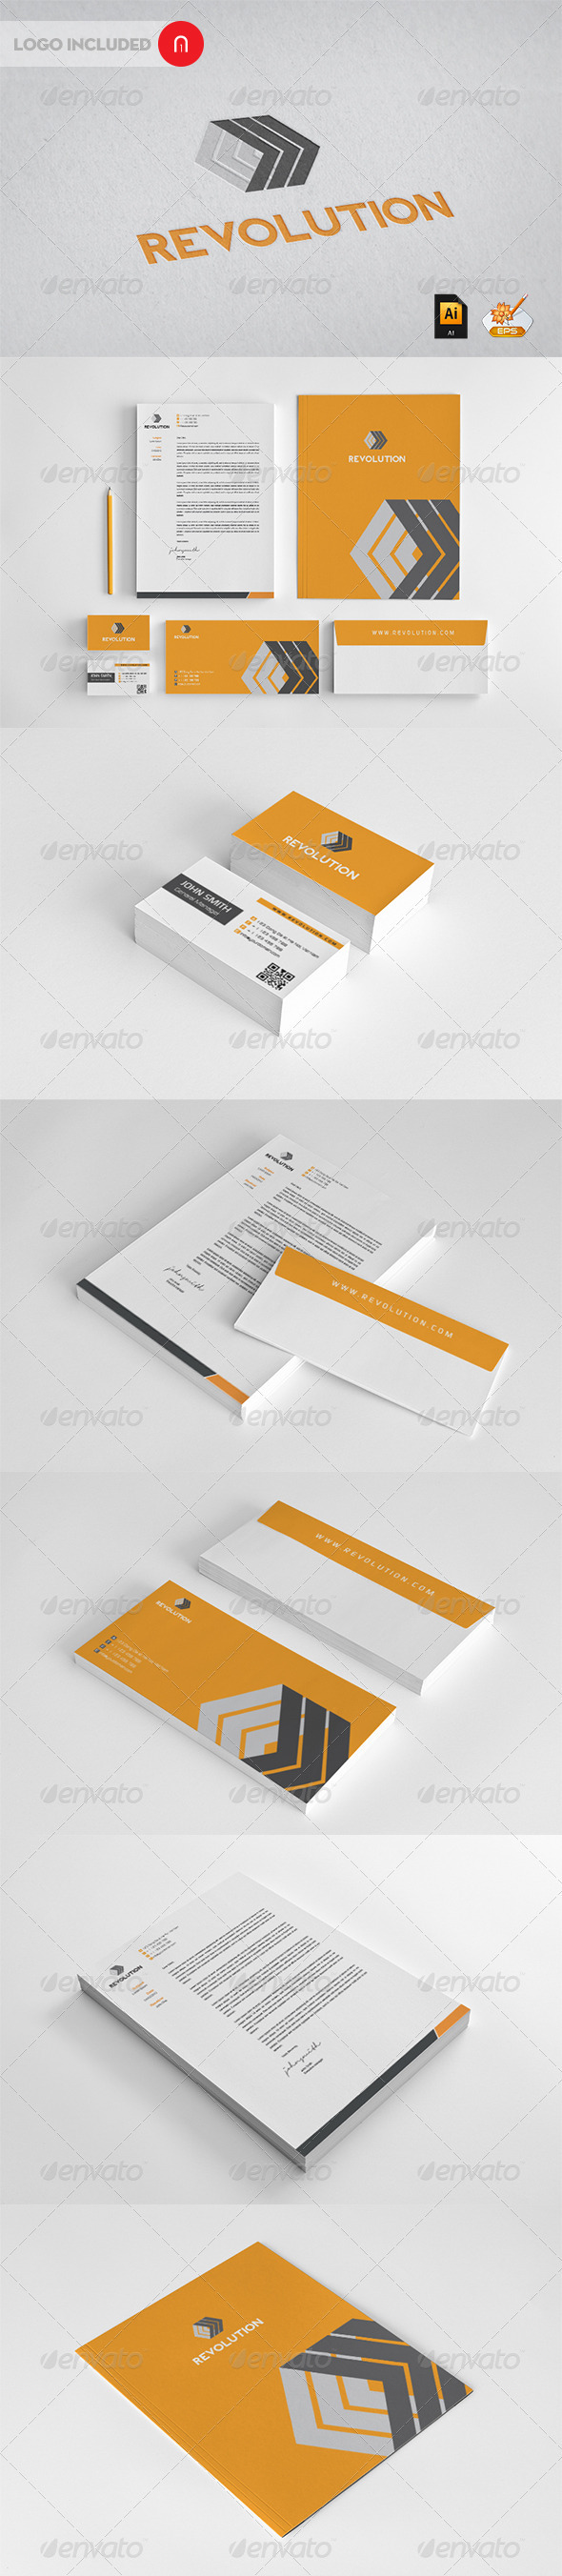 Revolution Corporate Identity - Stationery Print Templates